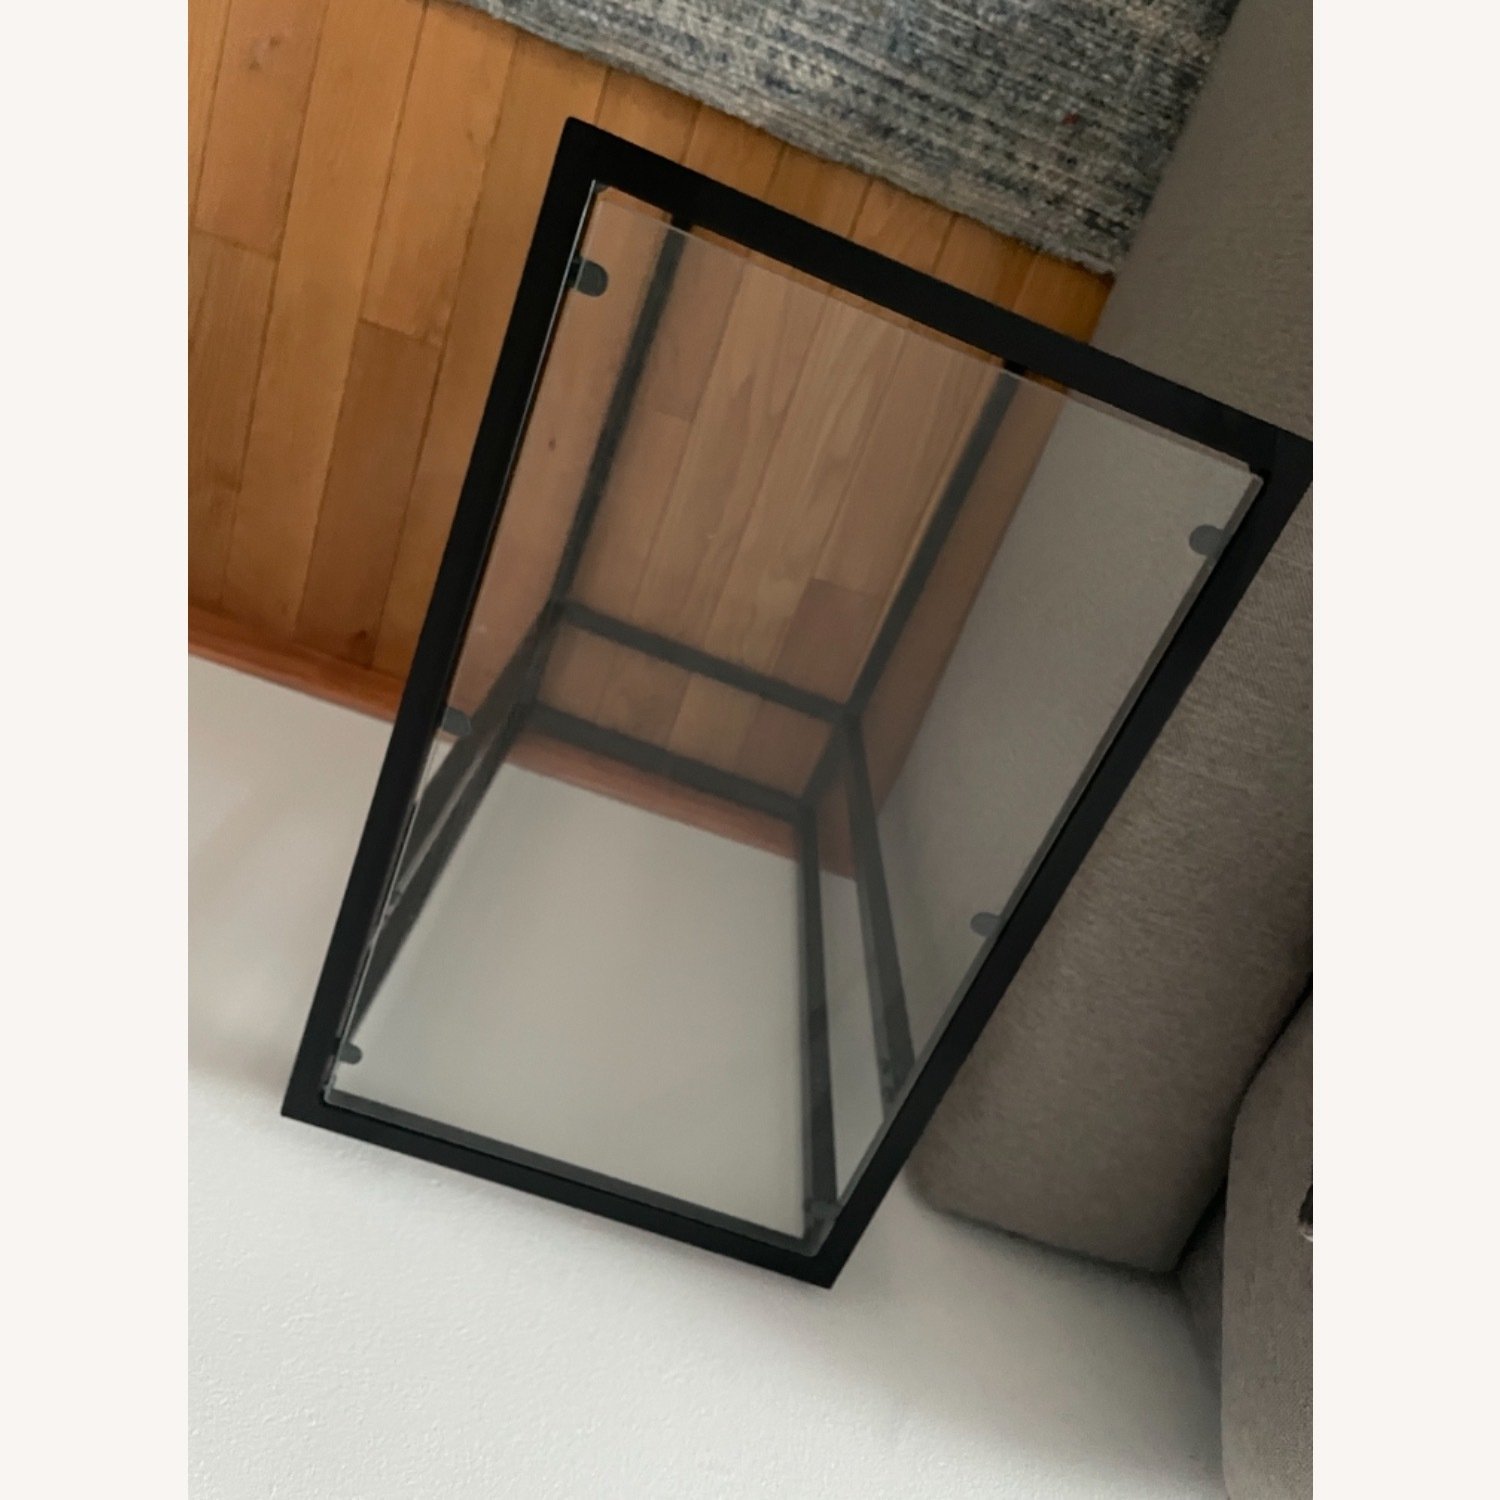 2 x Black Frame and Glass Side Tables - image-7